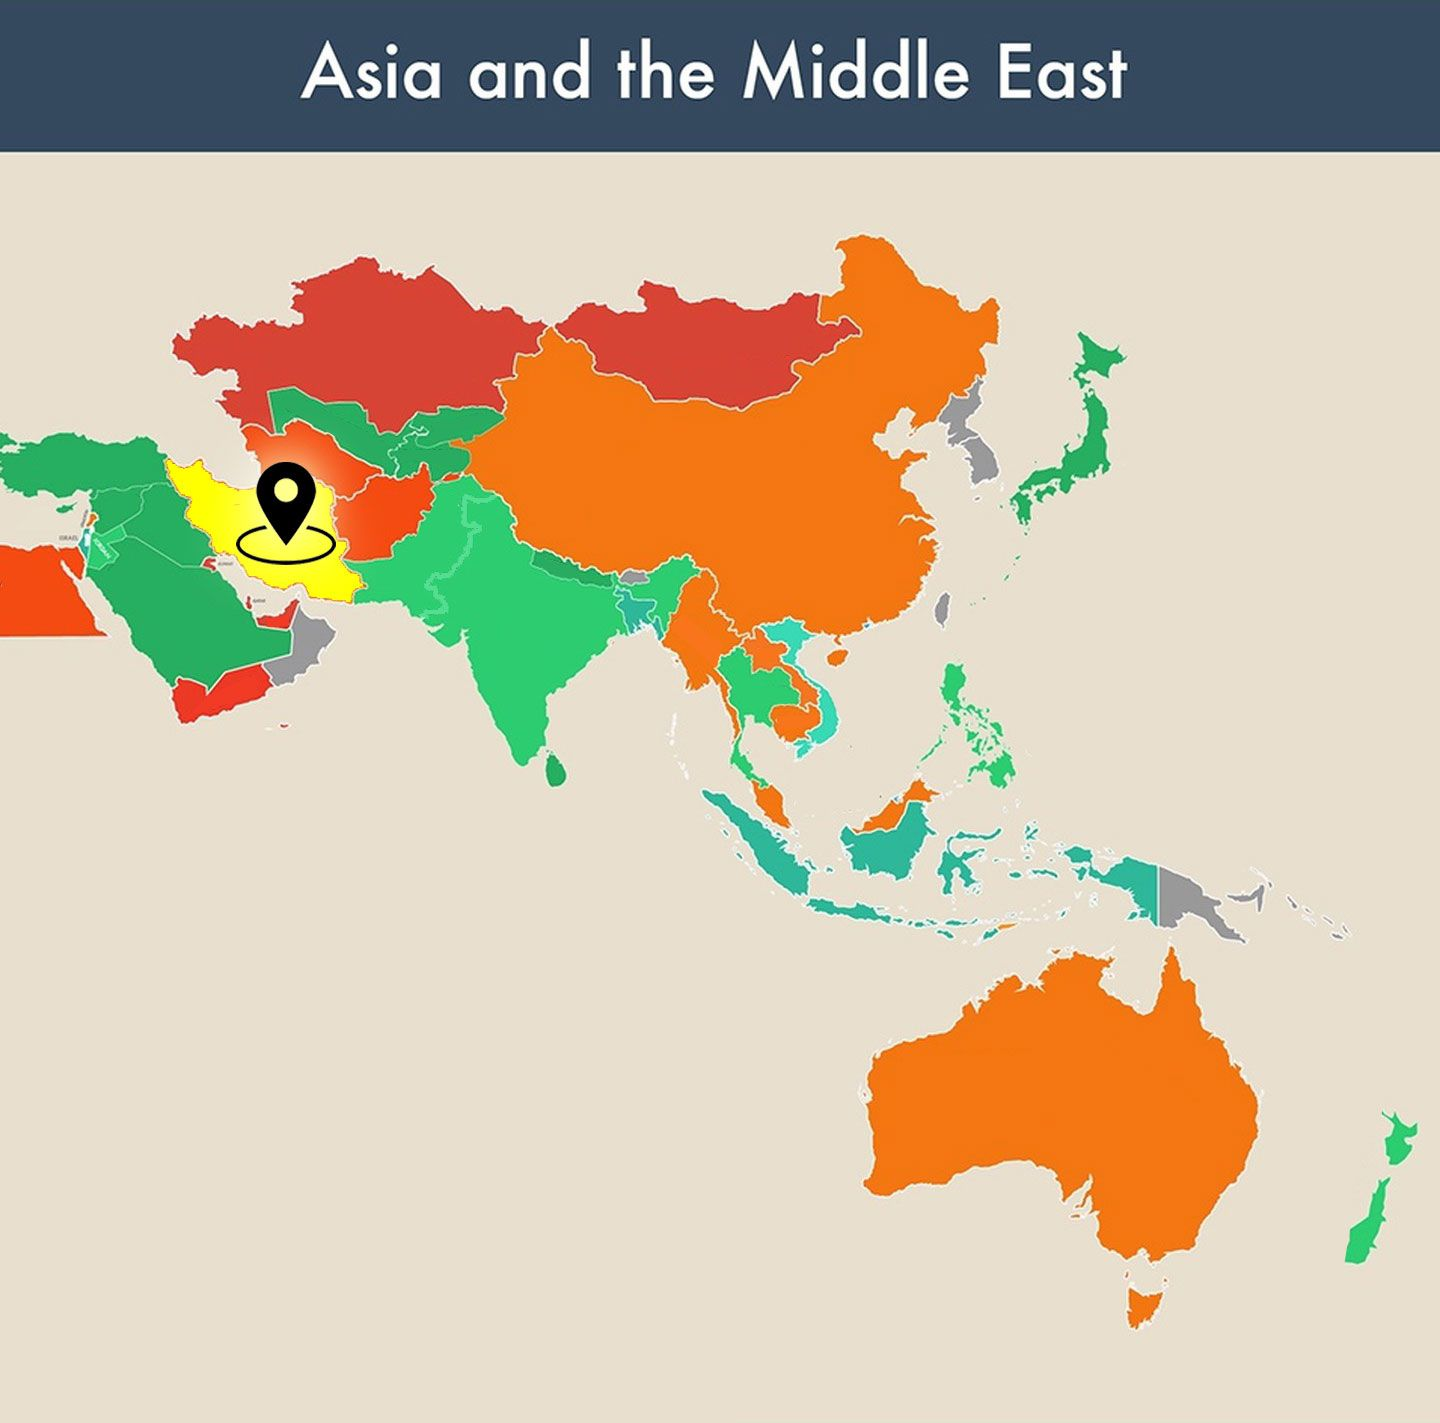 countries of the world empty map - iran image